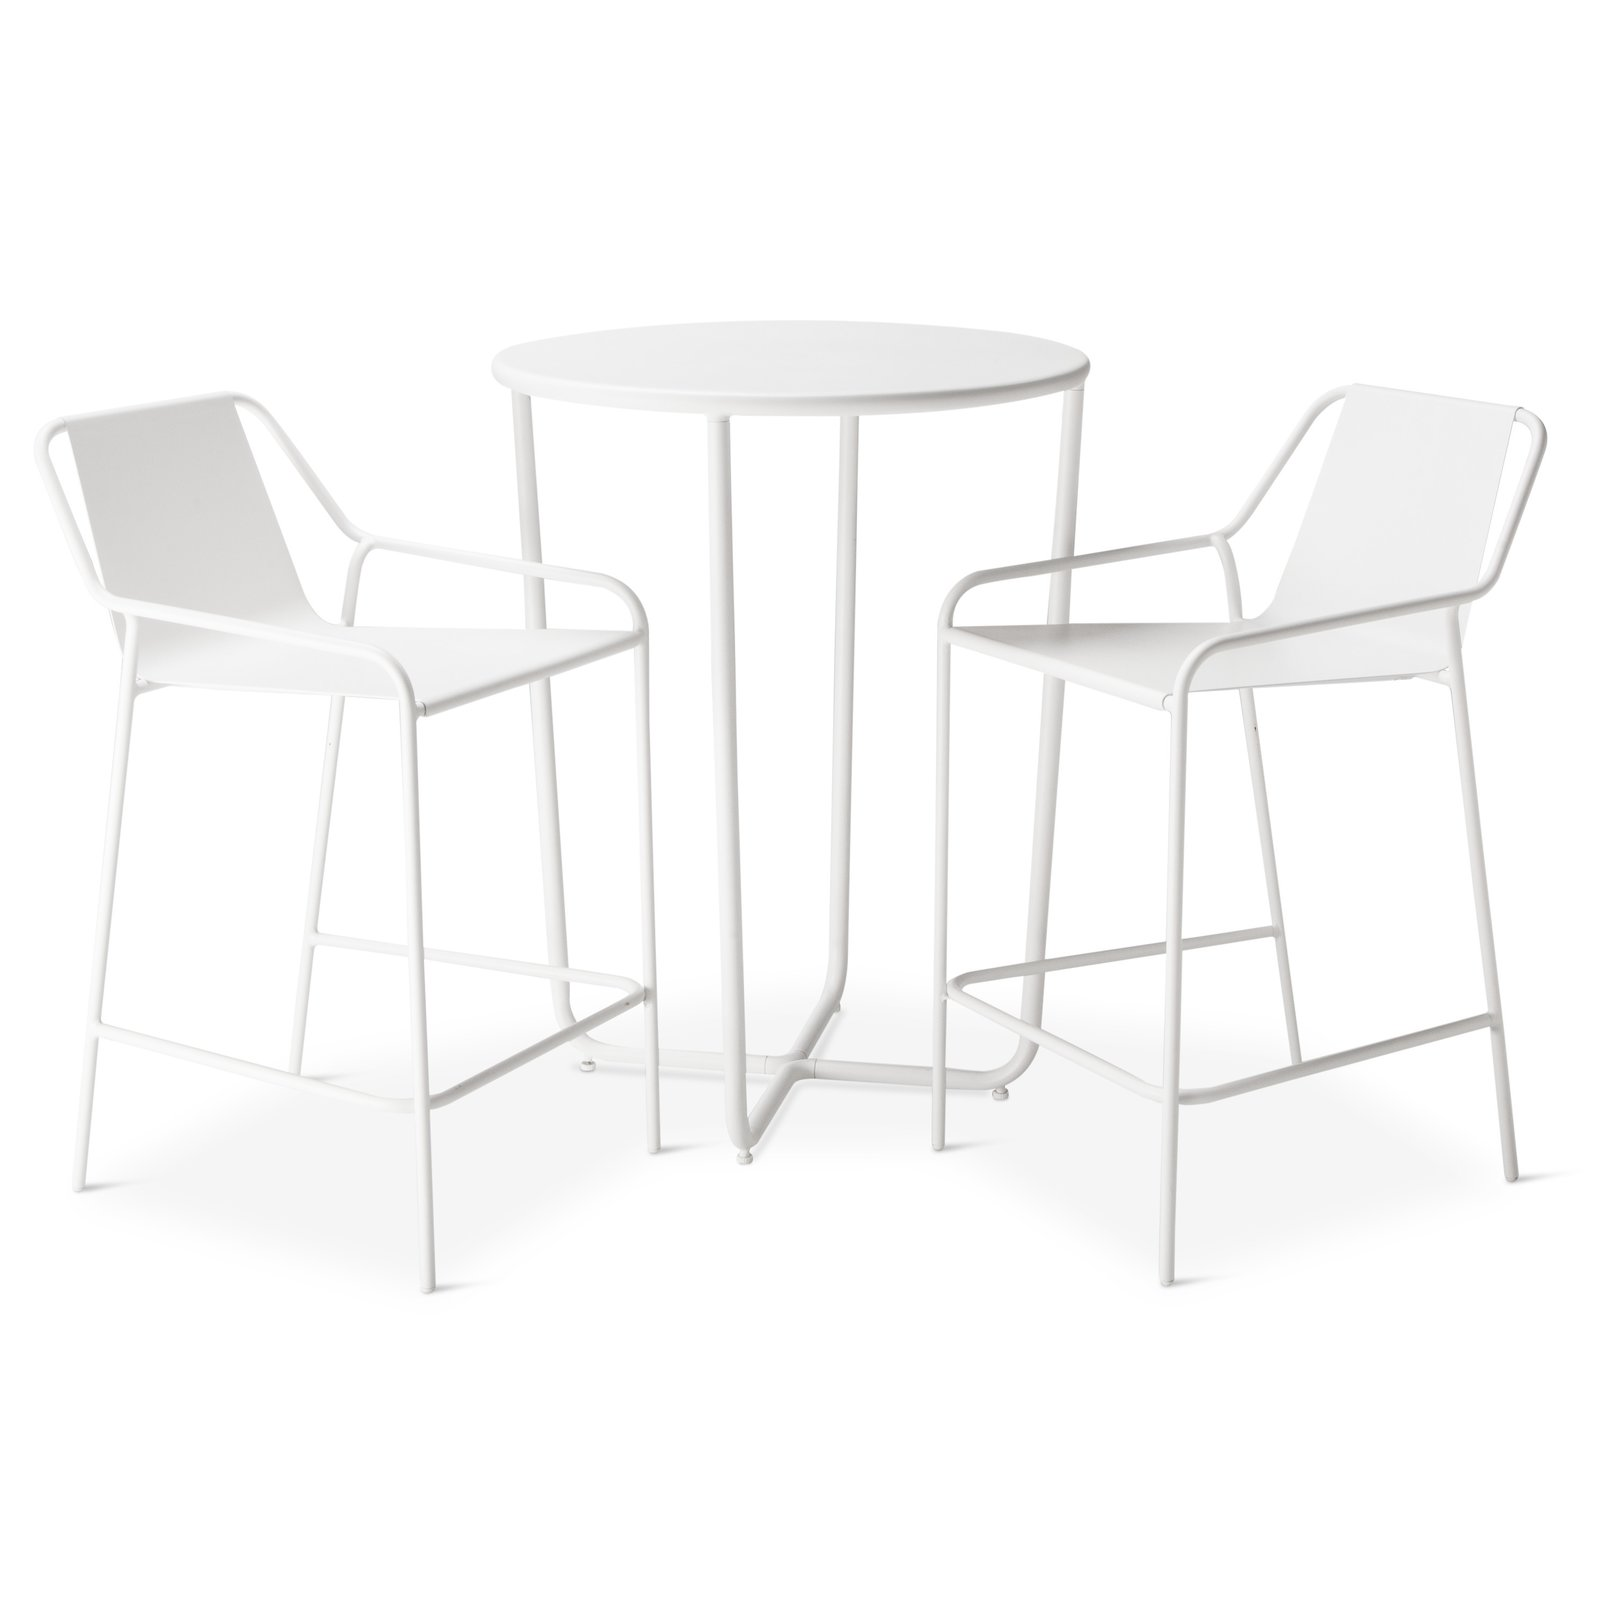 3-Piece Bar Bistro Set, $299.99; designed by Chris Deam and Nick Dine for Modern by Dwell Magazine for Target